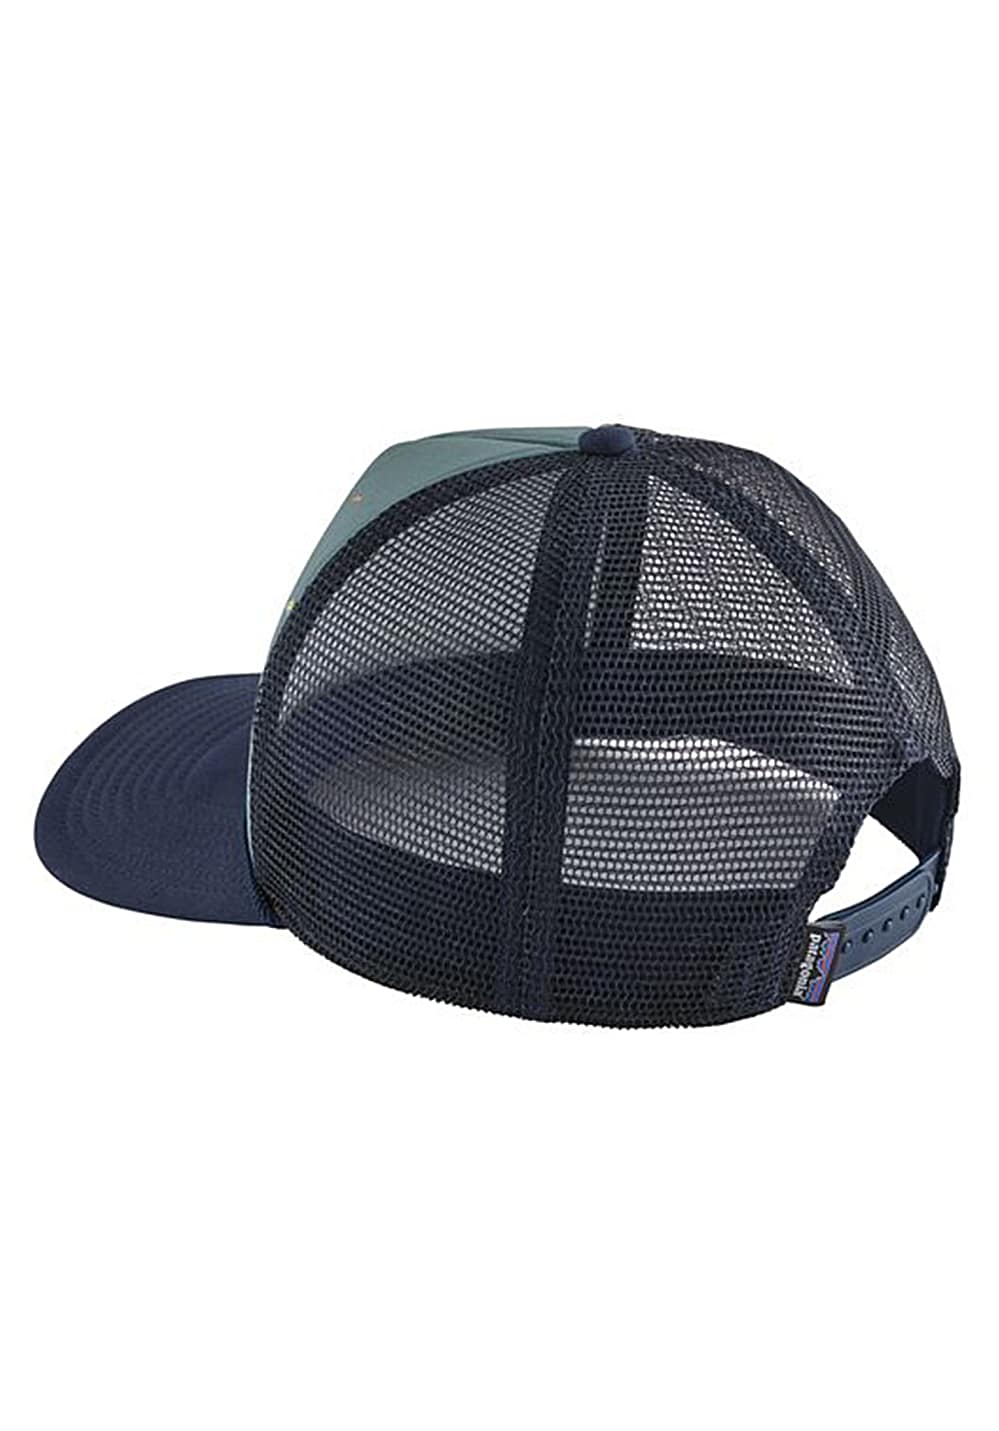 5f3158d92f2 ... Trucker Caps · PATAGONIA Save Our Rivers Interstate - Snapback Cap -  Blue. Back to Overview. 1  2. Previous